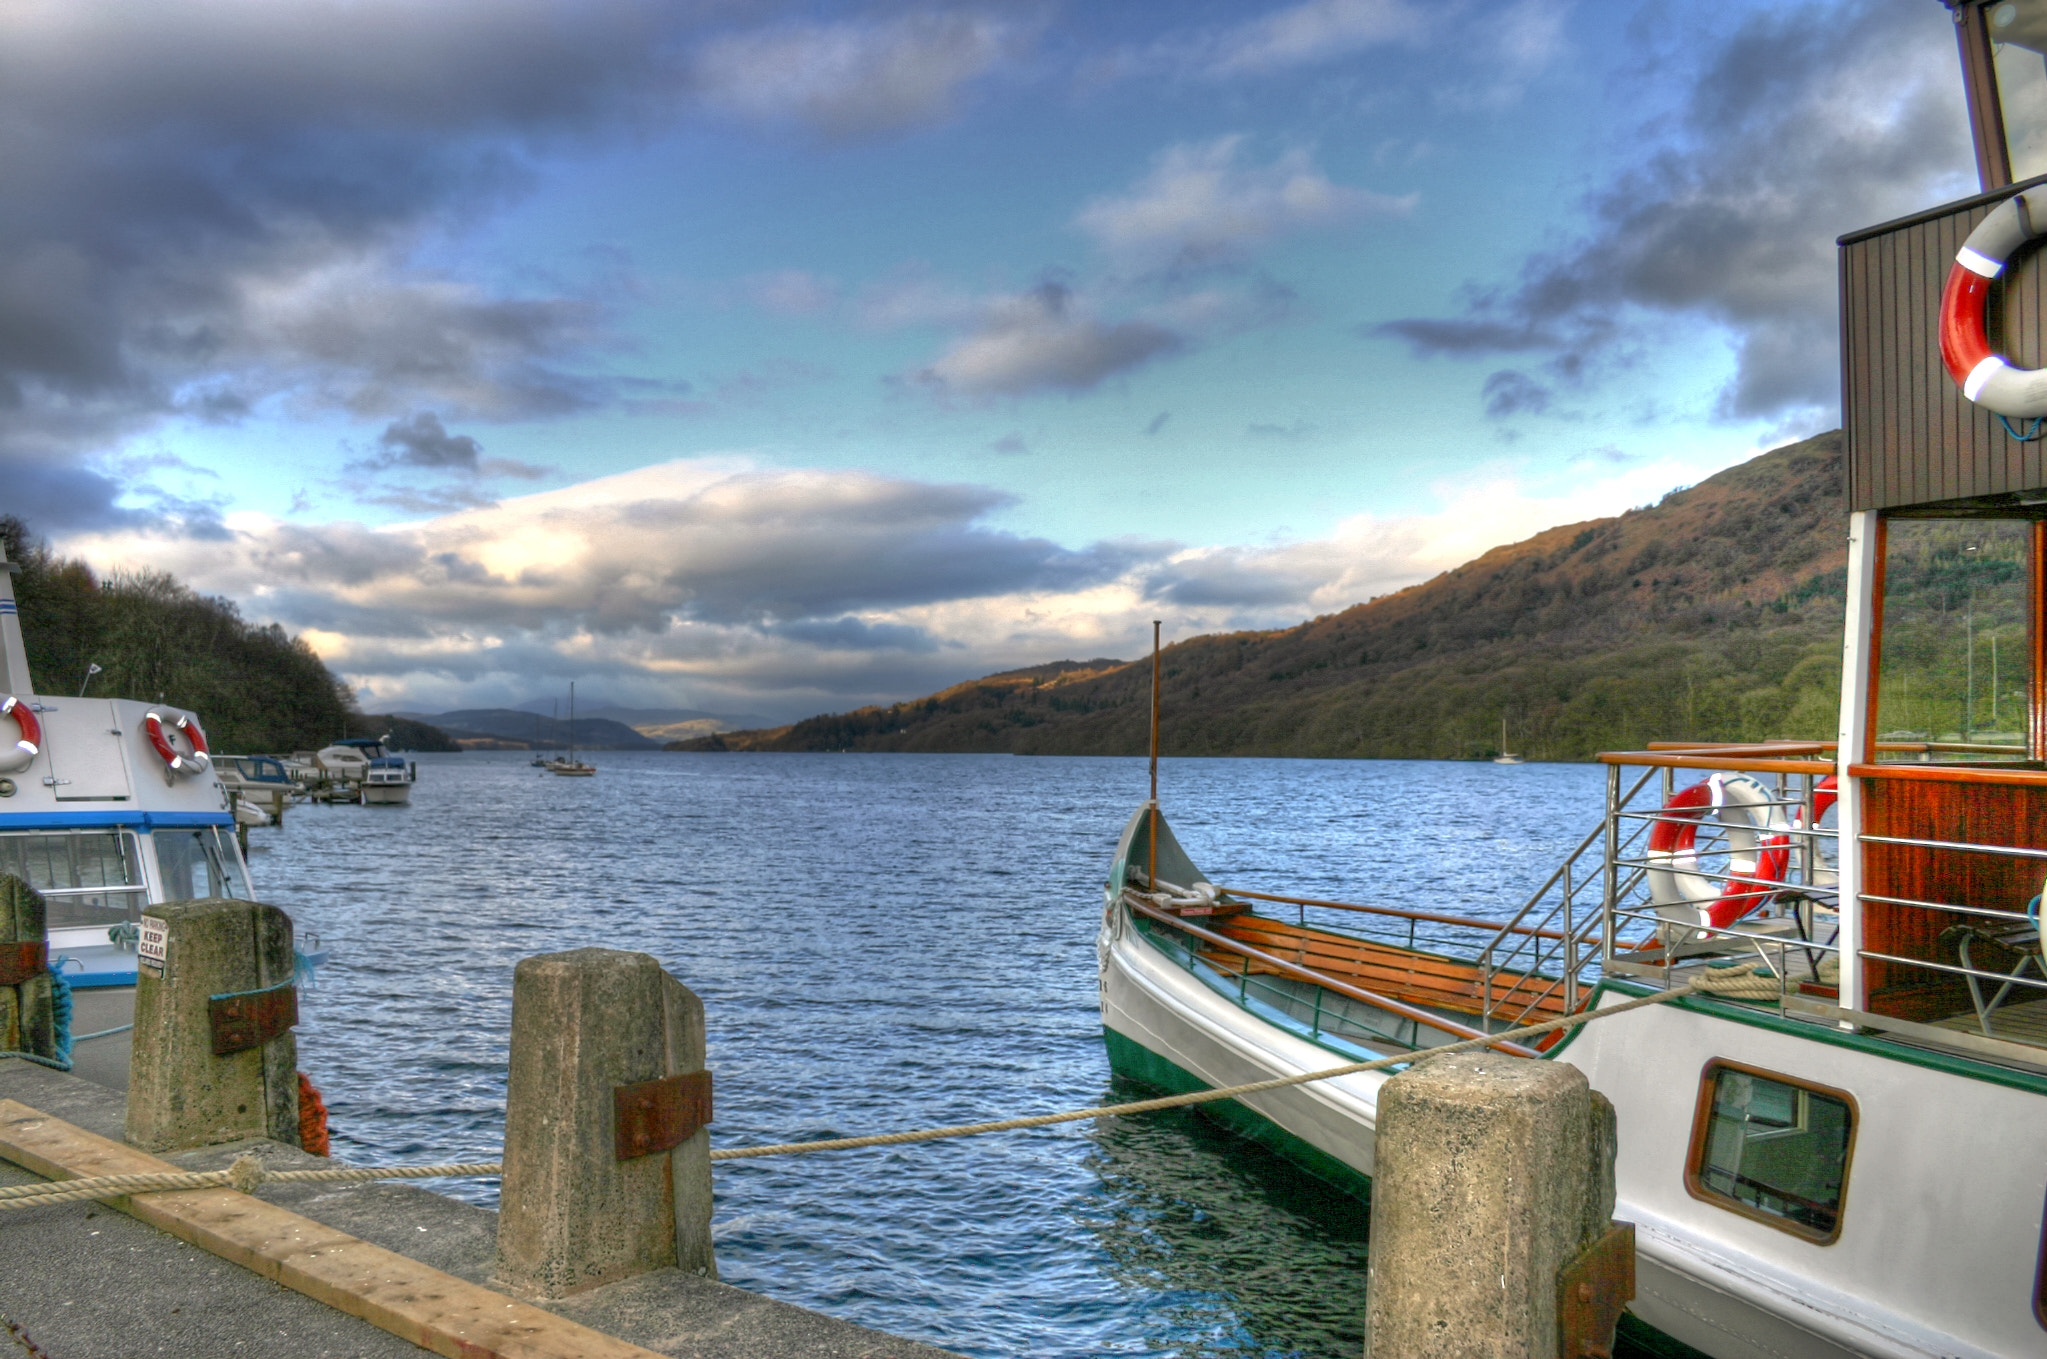 Photograph Lake Windermere by Karen Toh on 500px